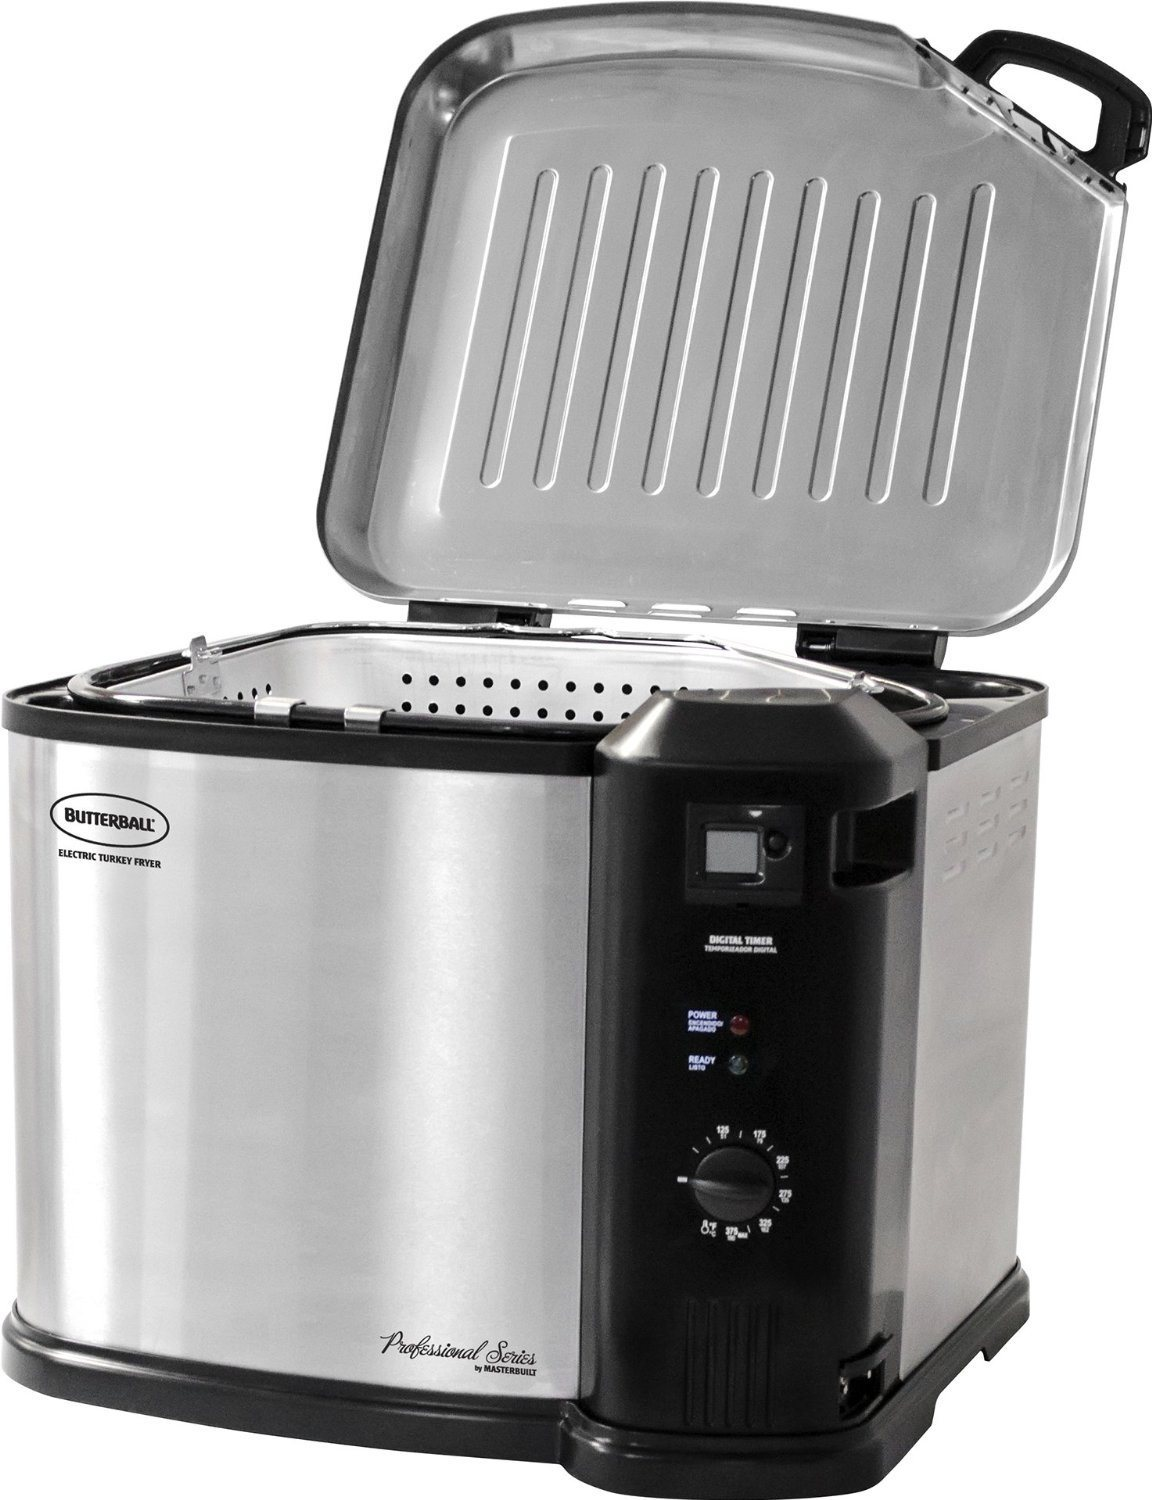 Our Best Turkey Fryer Reviews 2016